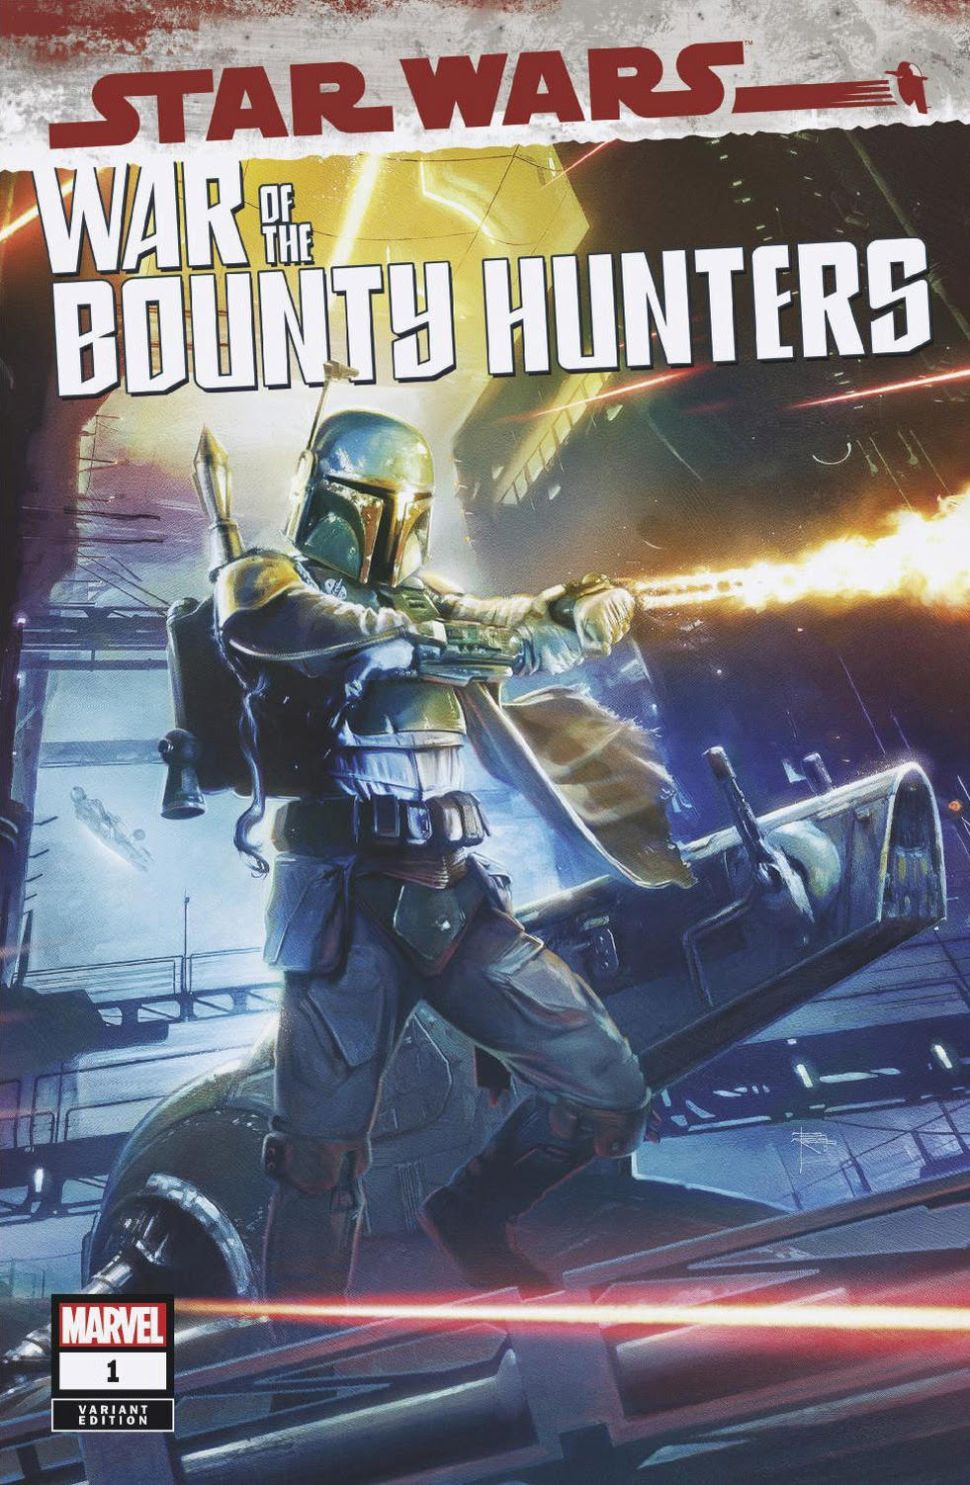 Marvel Comics Star Wars: War of the Bounty Hunters #1 Variant Cover by Brian Rood